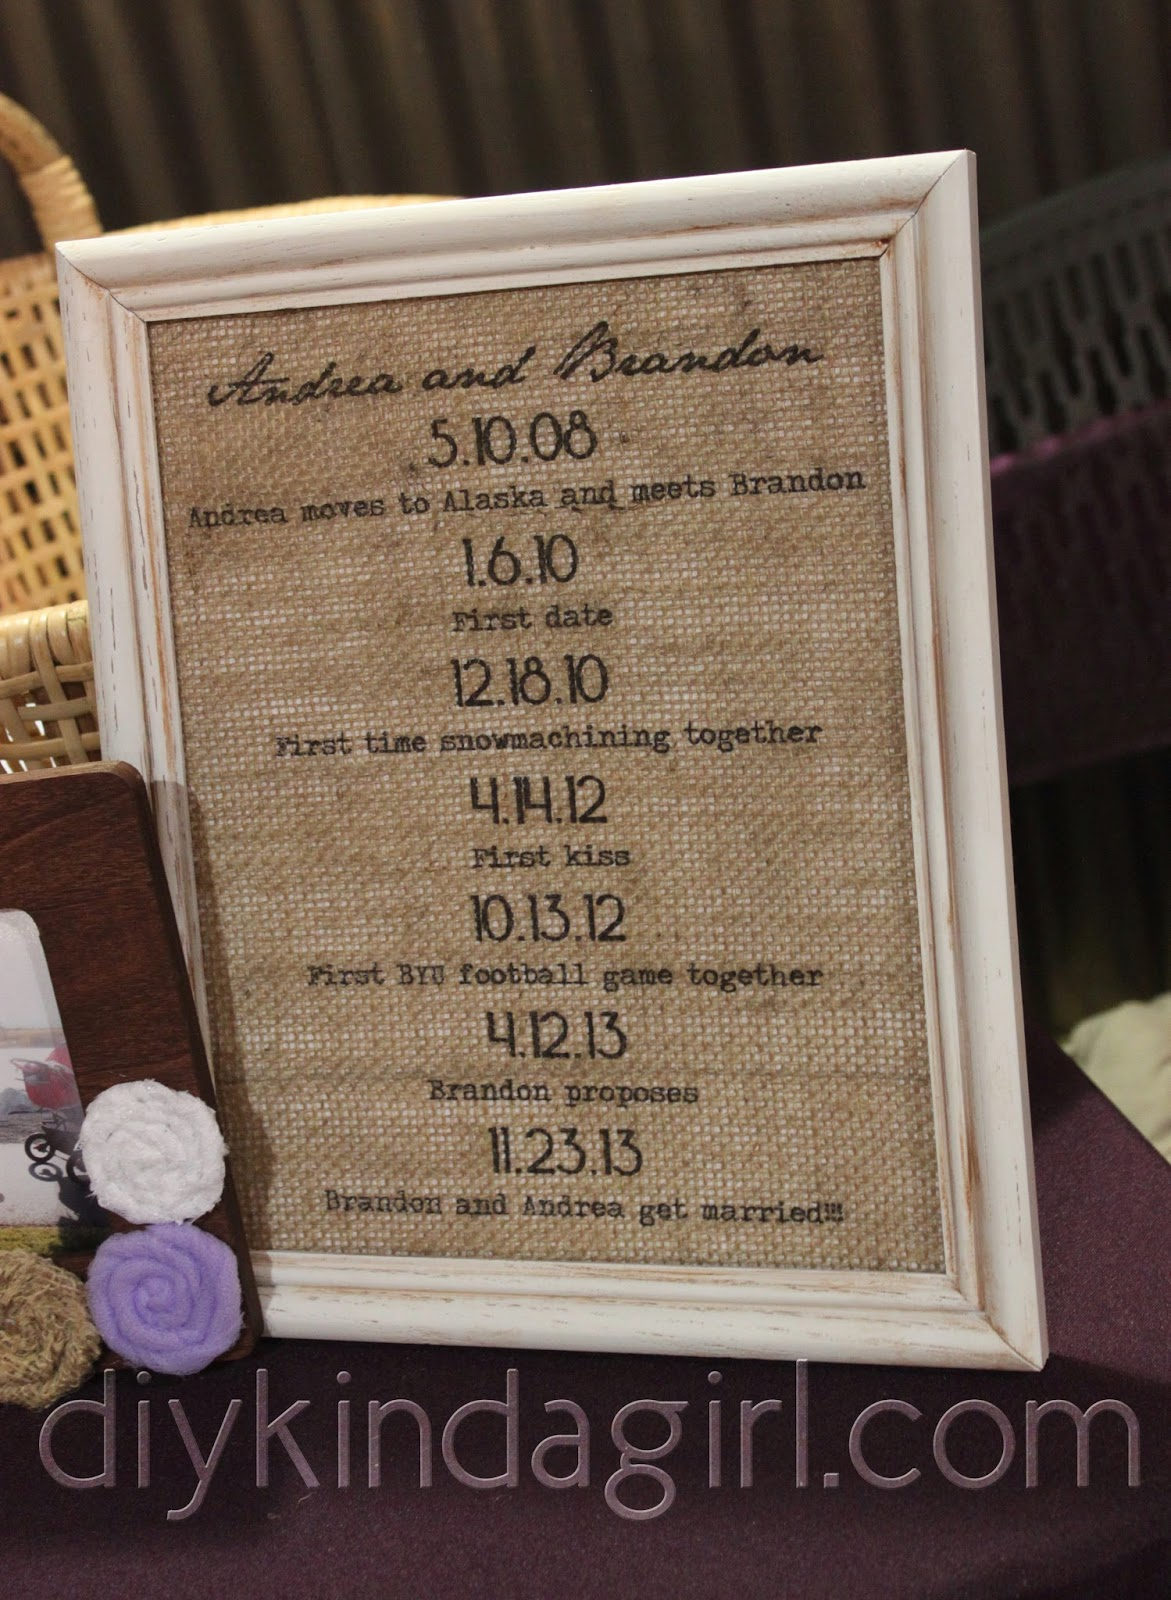 Wedding Gift Table Setup : Wedding Gift Table Setup Just a few feet over from the gift table was ...